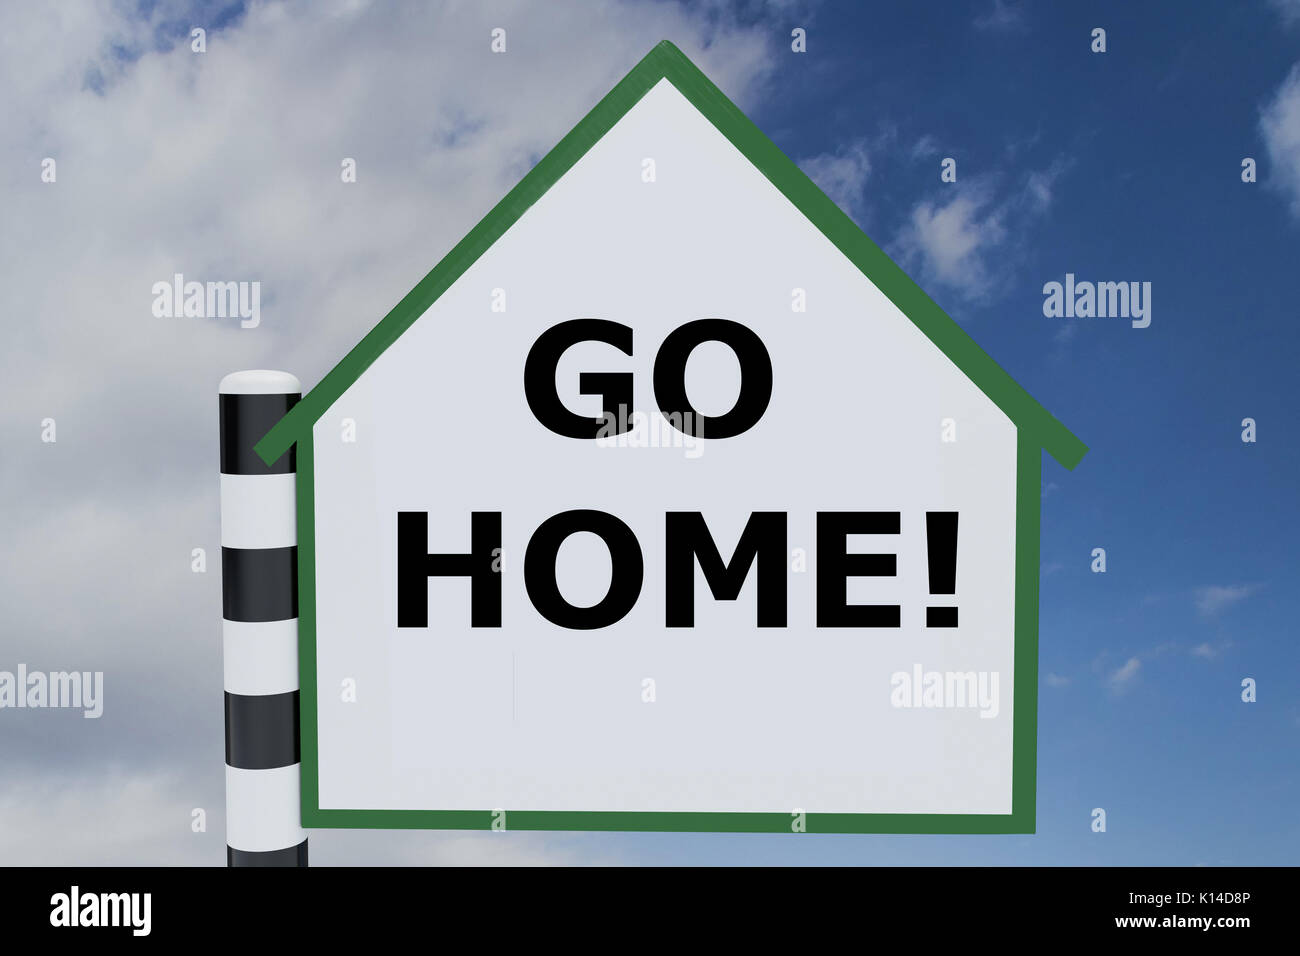 """Canary Government intensifies its """"return home"""" message  3d-illustration-of-go-home!-script-on-road-sign-pointing-upward-K14D8P"""